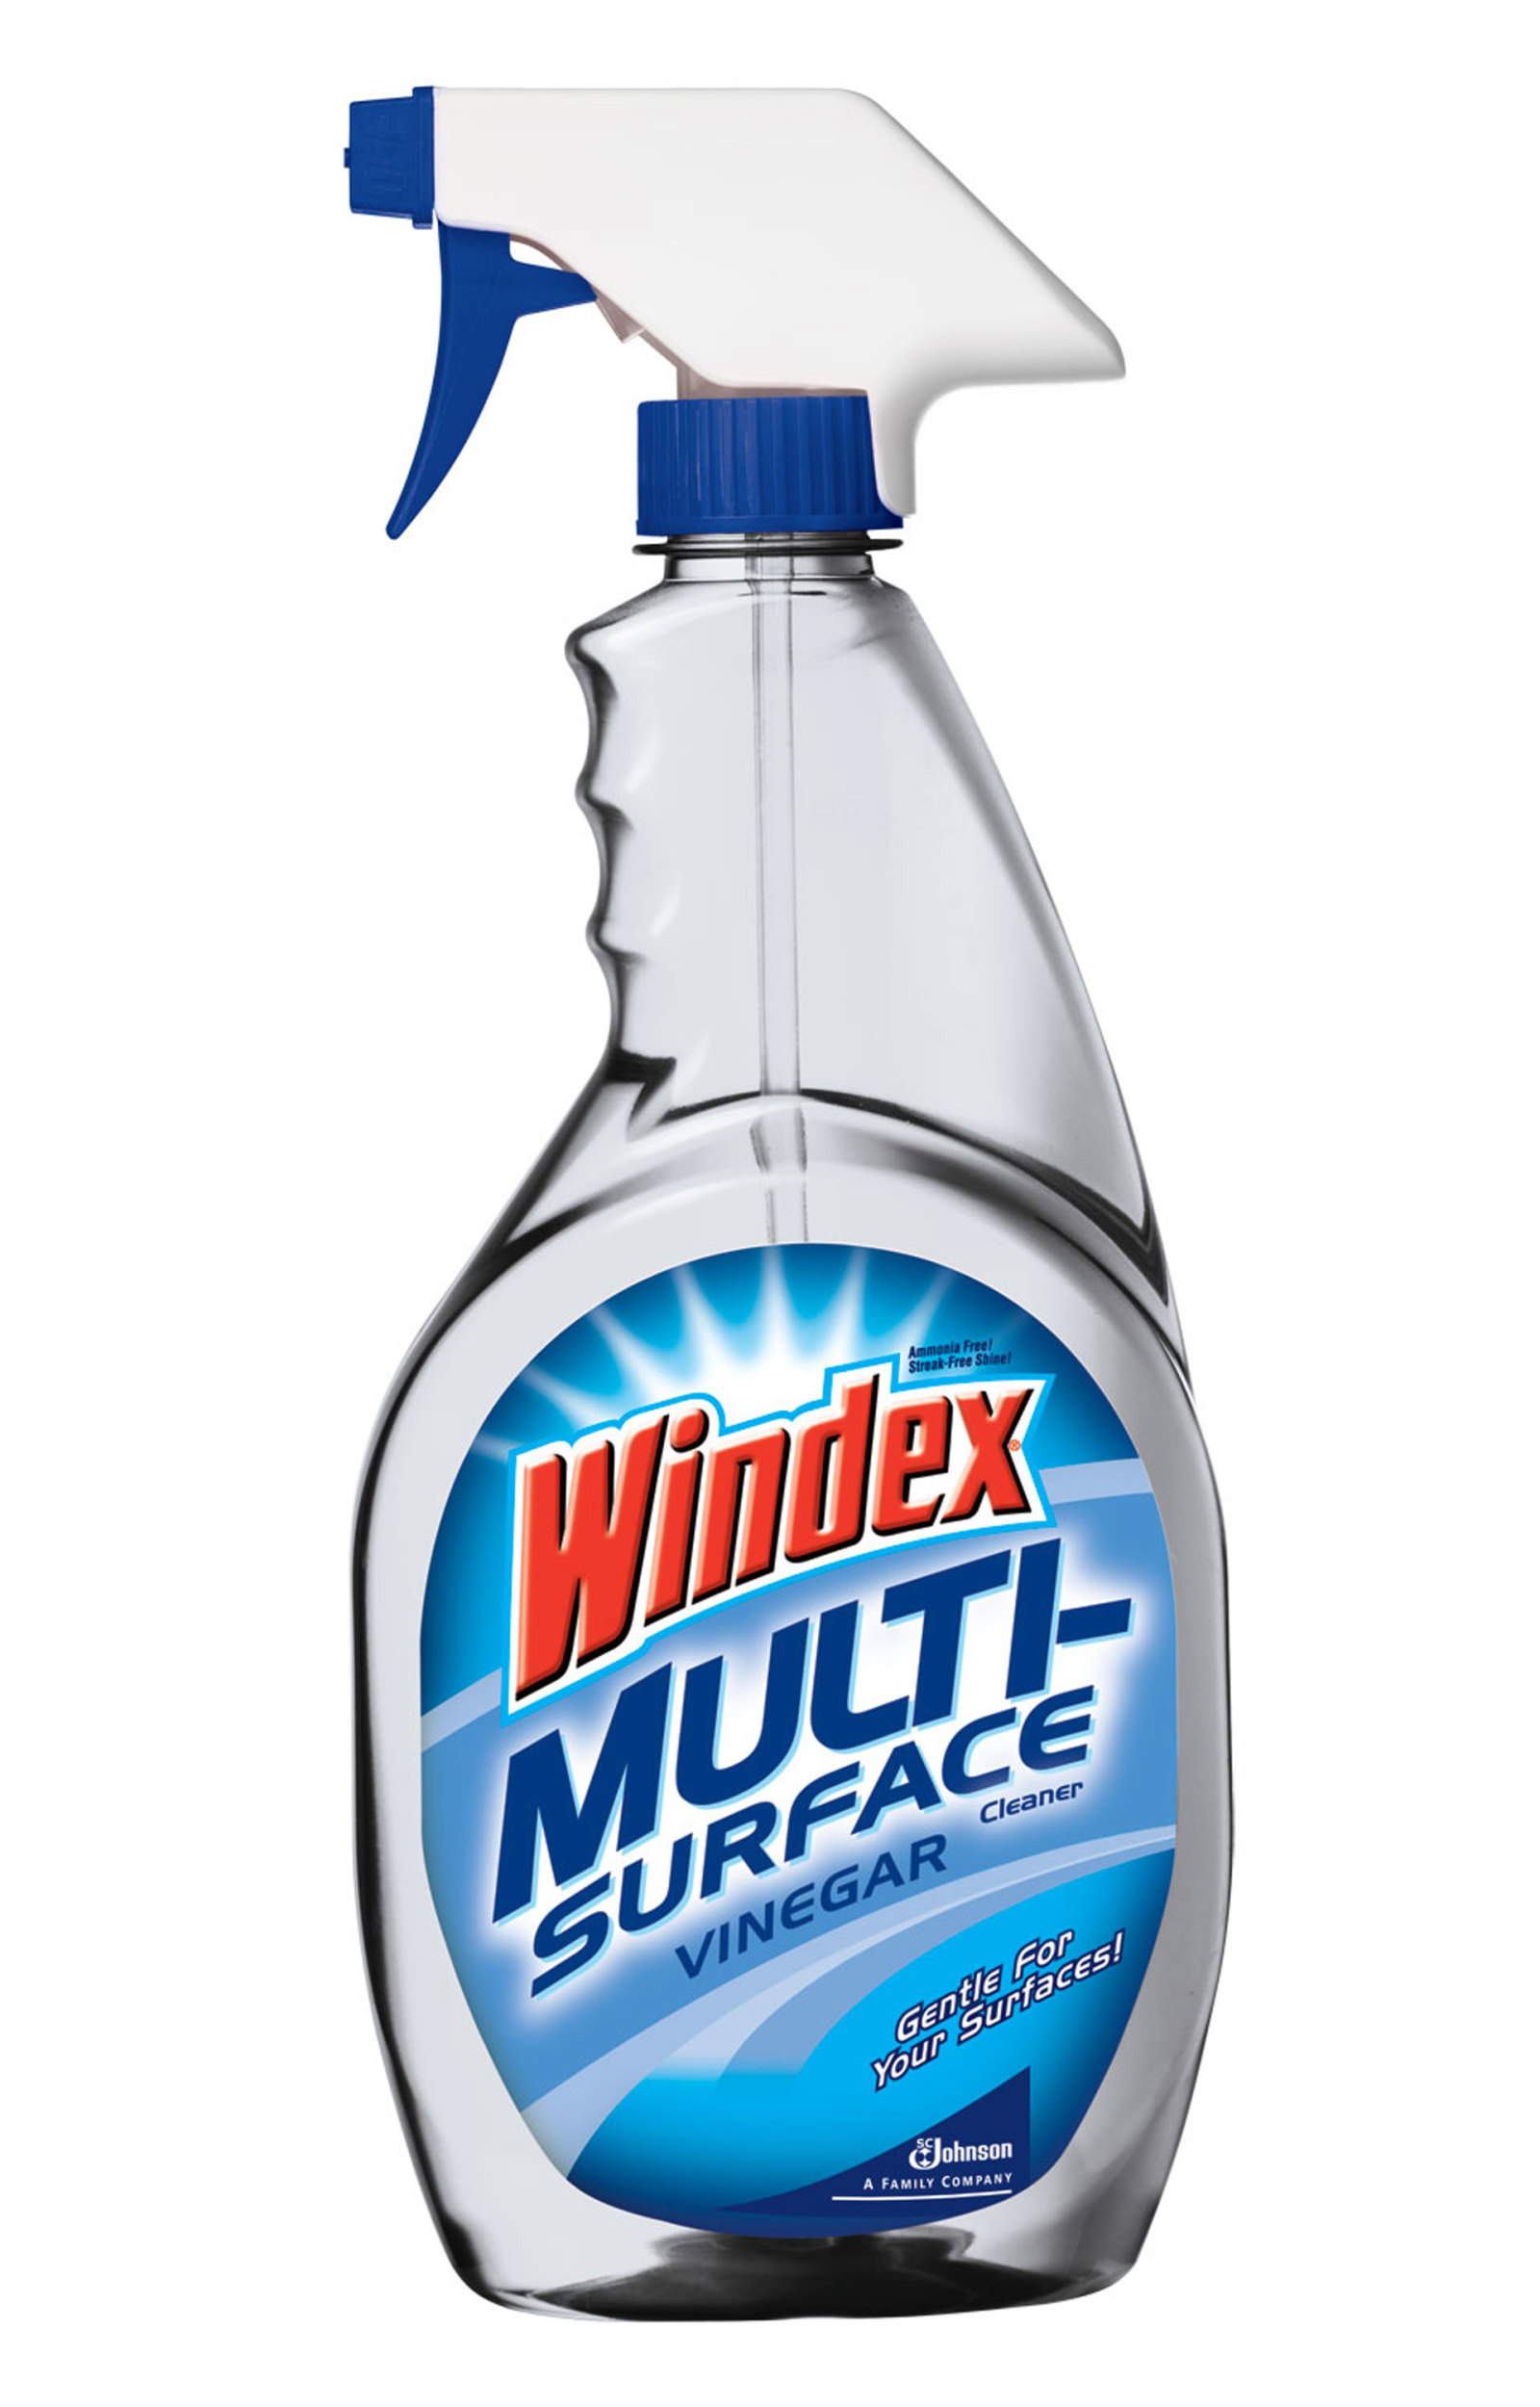 windex multi surface vinegar cleaner review. Black Bedroom Furniture Sets. Home Design Ideas